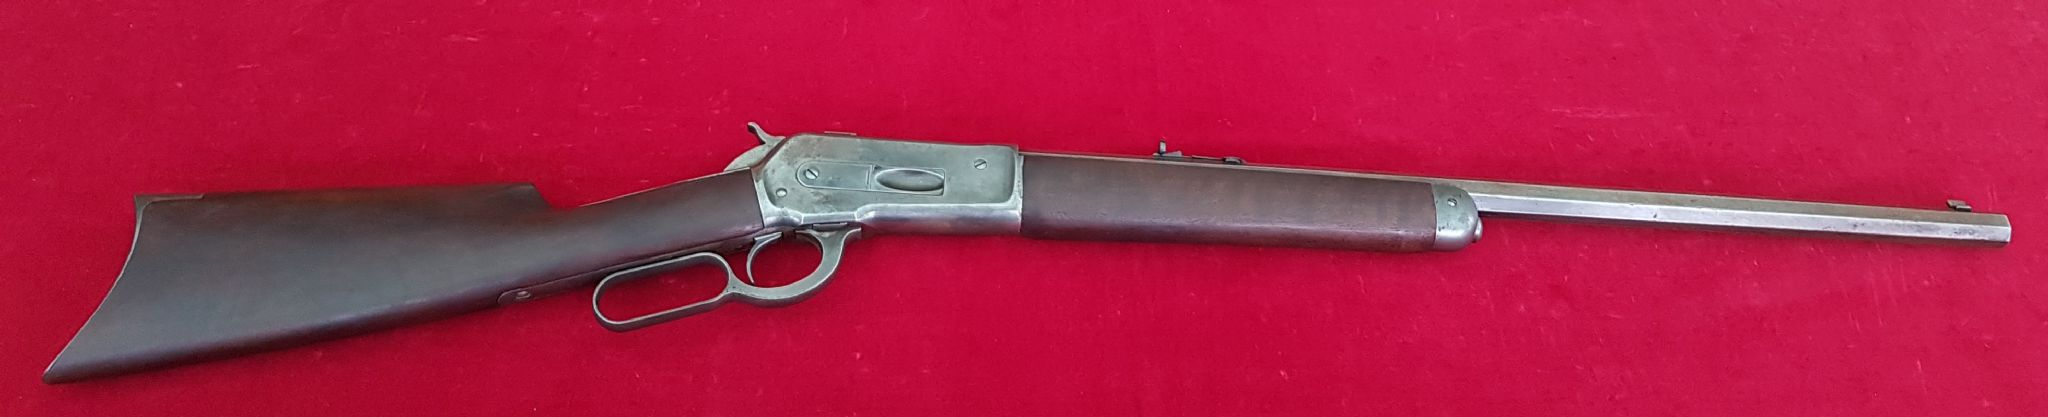 X X X SOLD X X X Winchester Rifle Model 1886  Manufactured